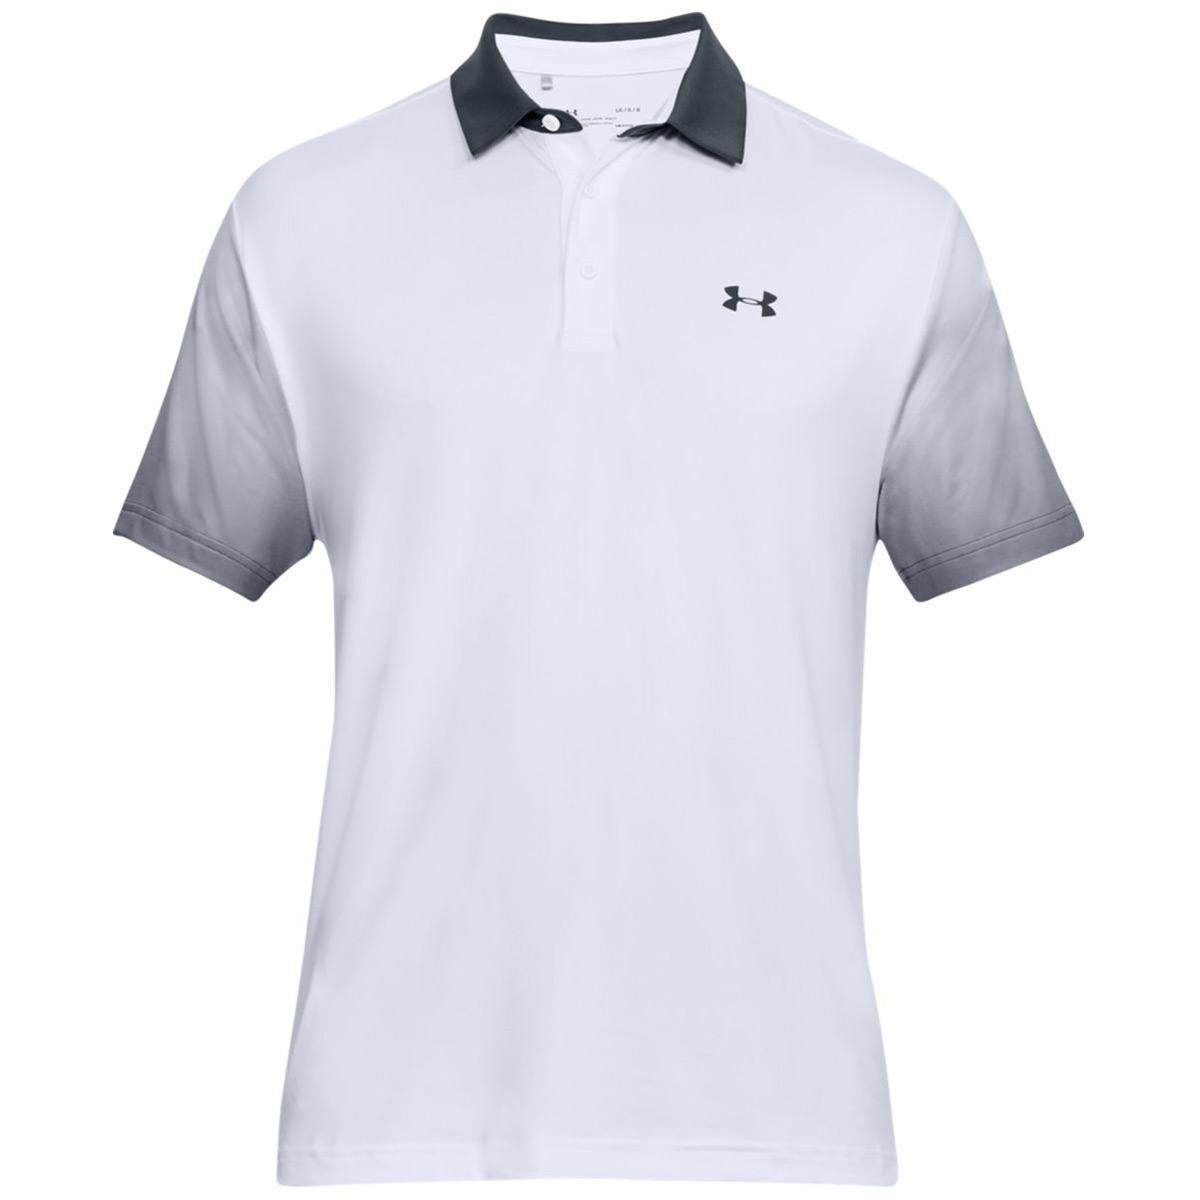 Under-Armour-Mens-UA-Playoff-Performance-Golf-Polo-Shirt-42-OFF-RRP thumbnail 51